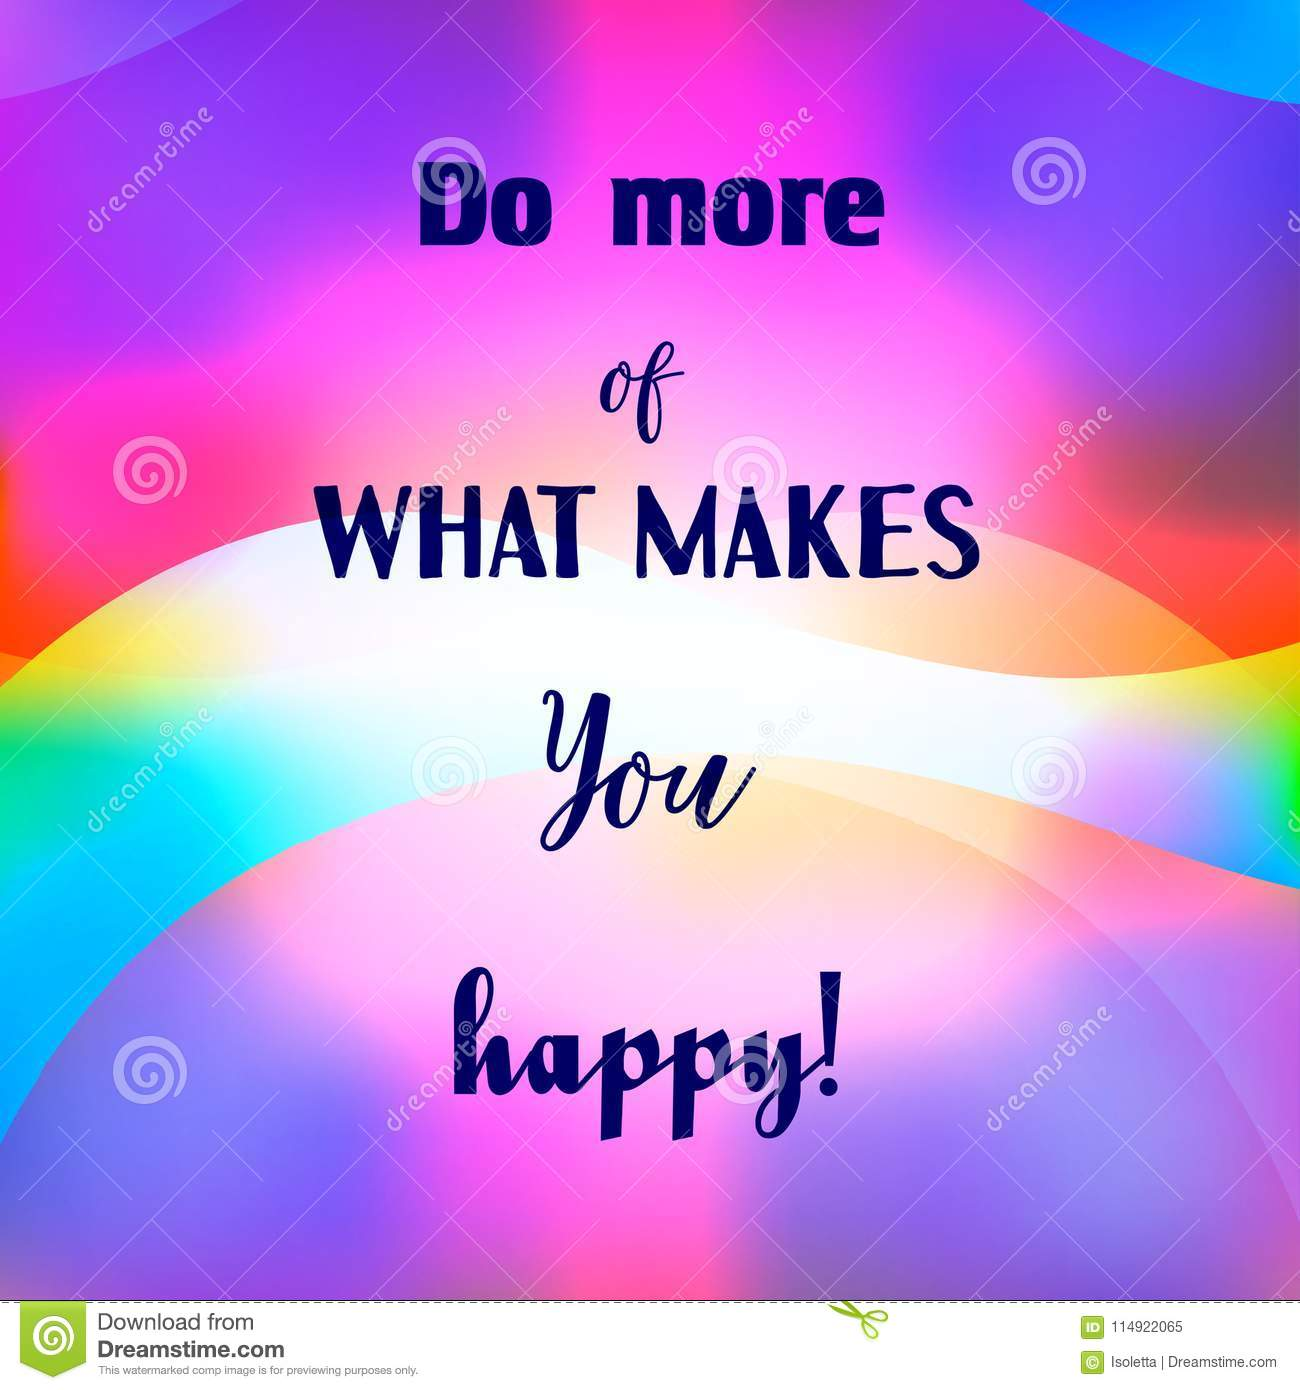 Inspirational quote Do more of what makes You happy on blurred background. Decorative design texture.